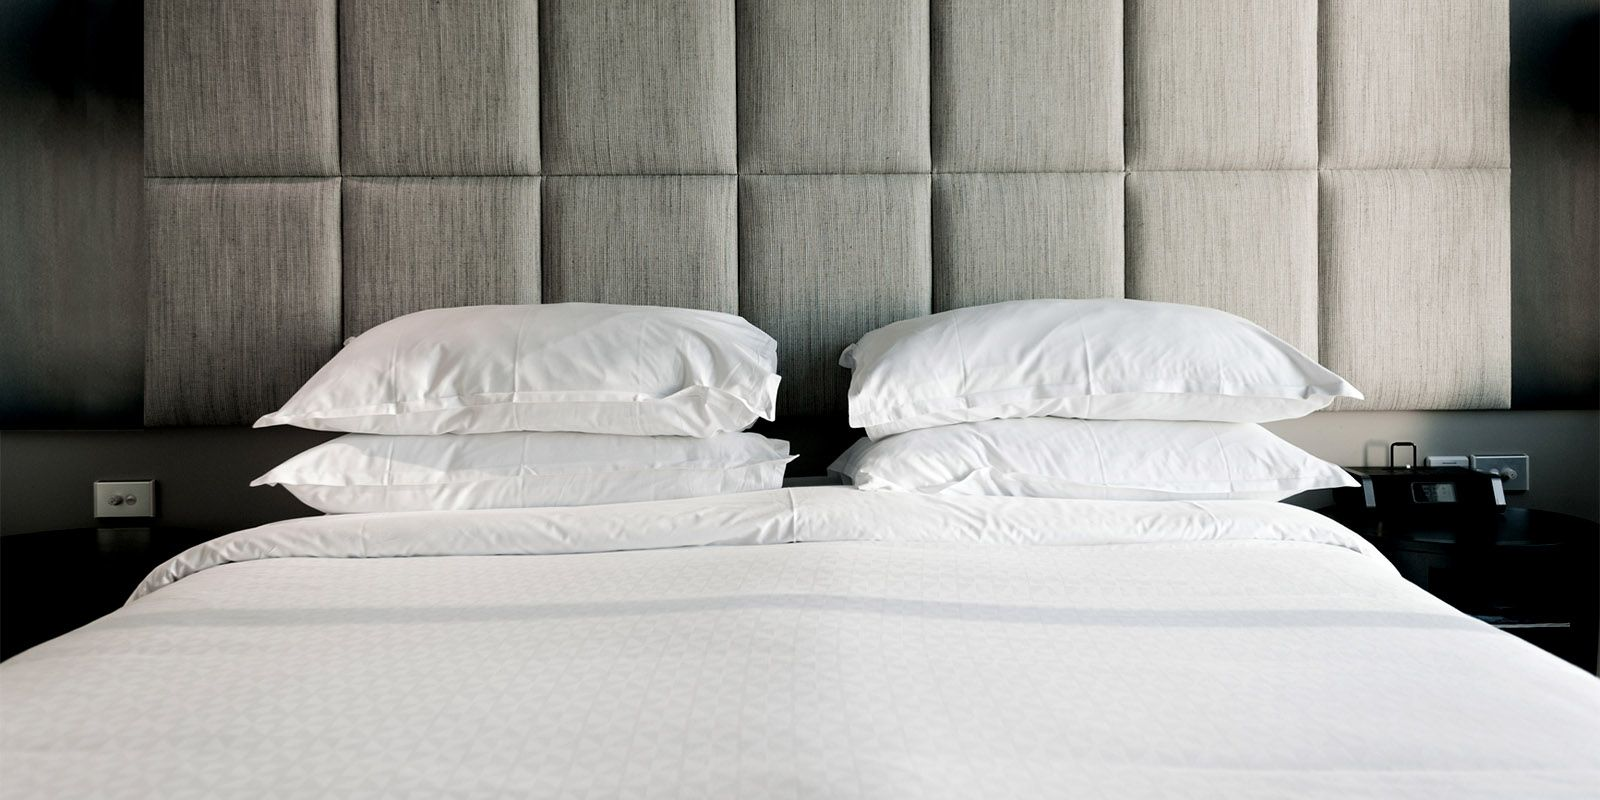 Upgrade Your Whole Life With These Very Good Sheets